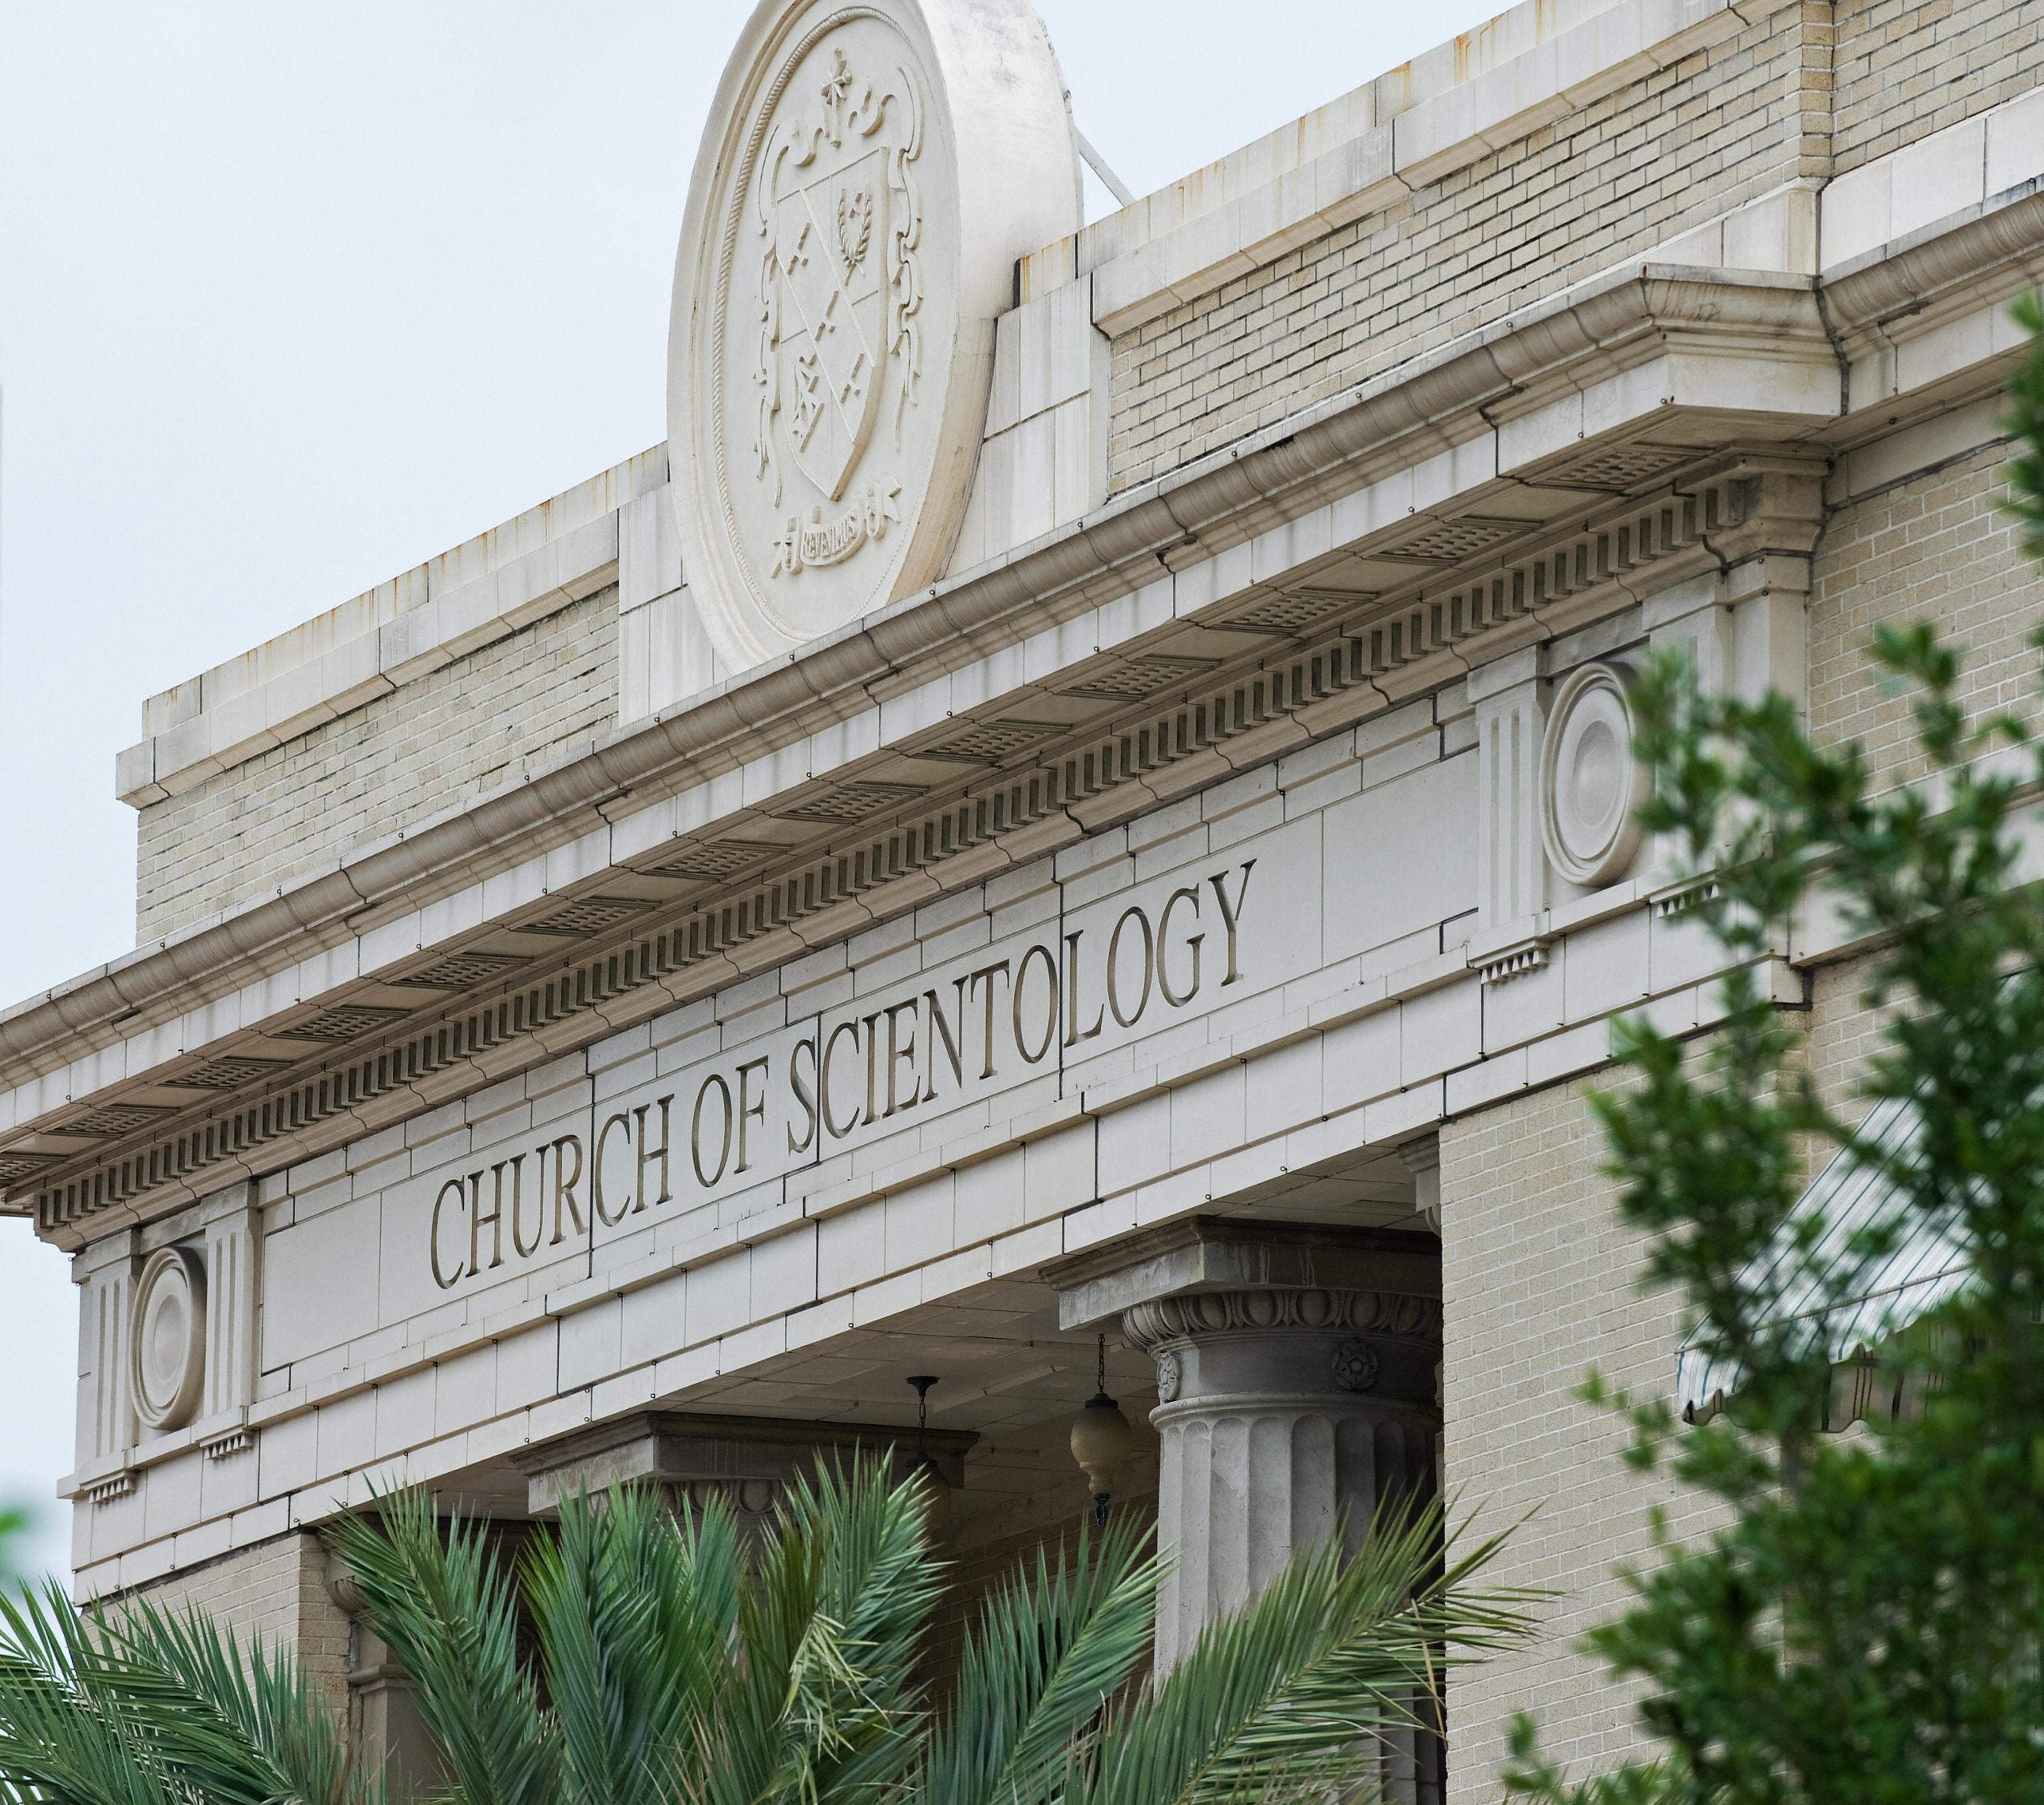 How my visit to the Church of Scientology ended in a police station